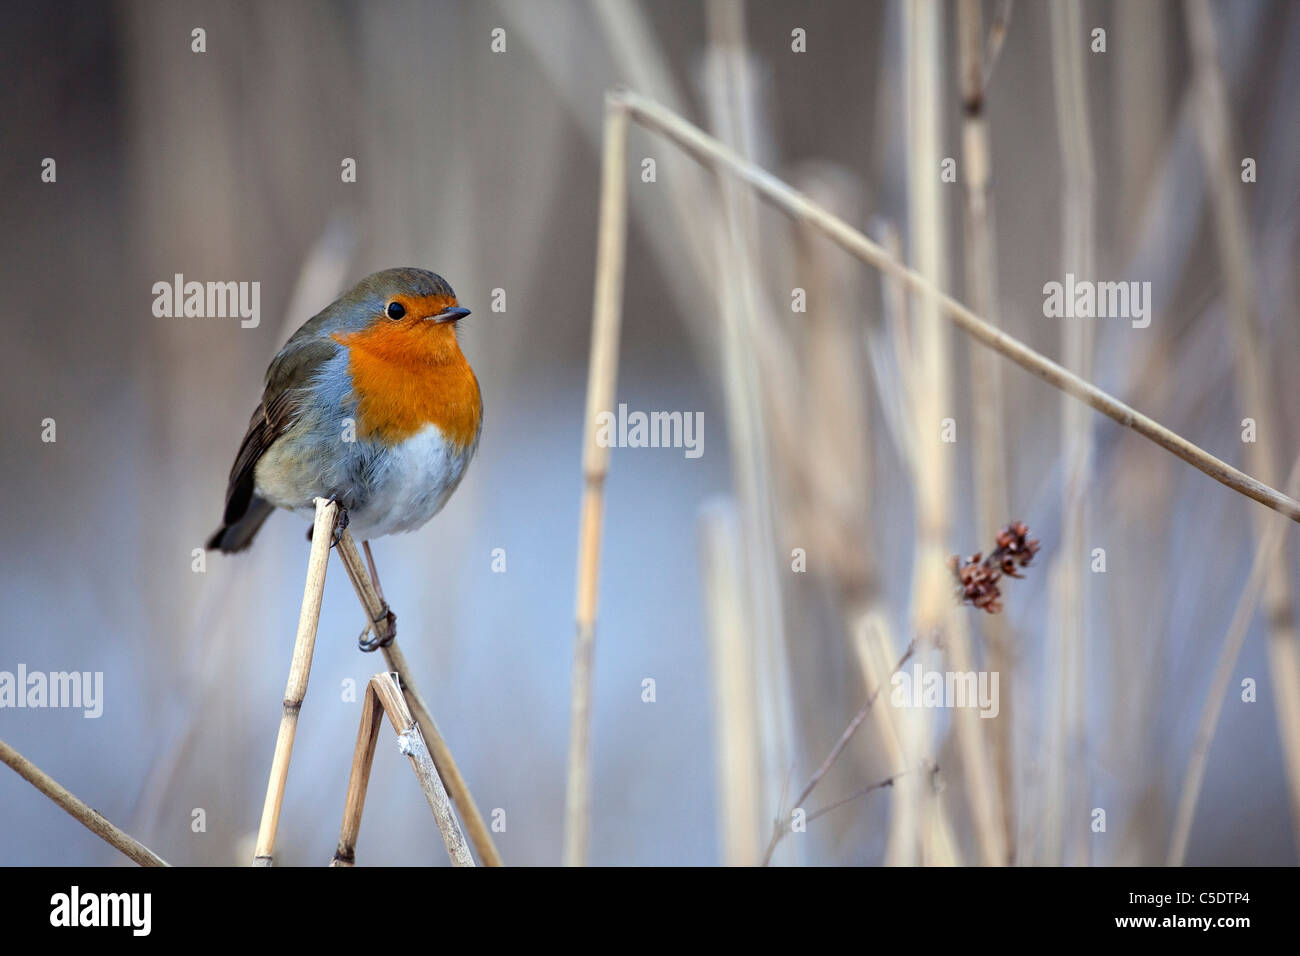 Close-up of Robin bird on reeds against blurred background - Stock Image